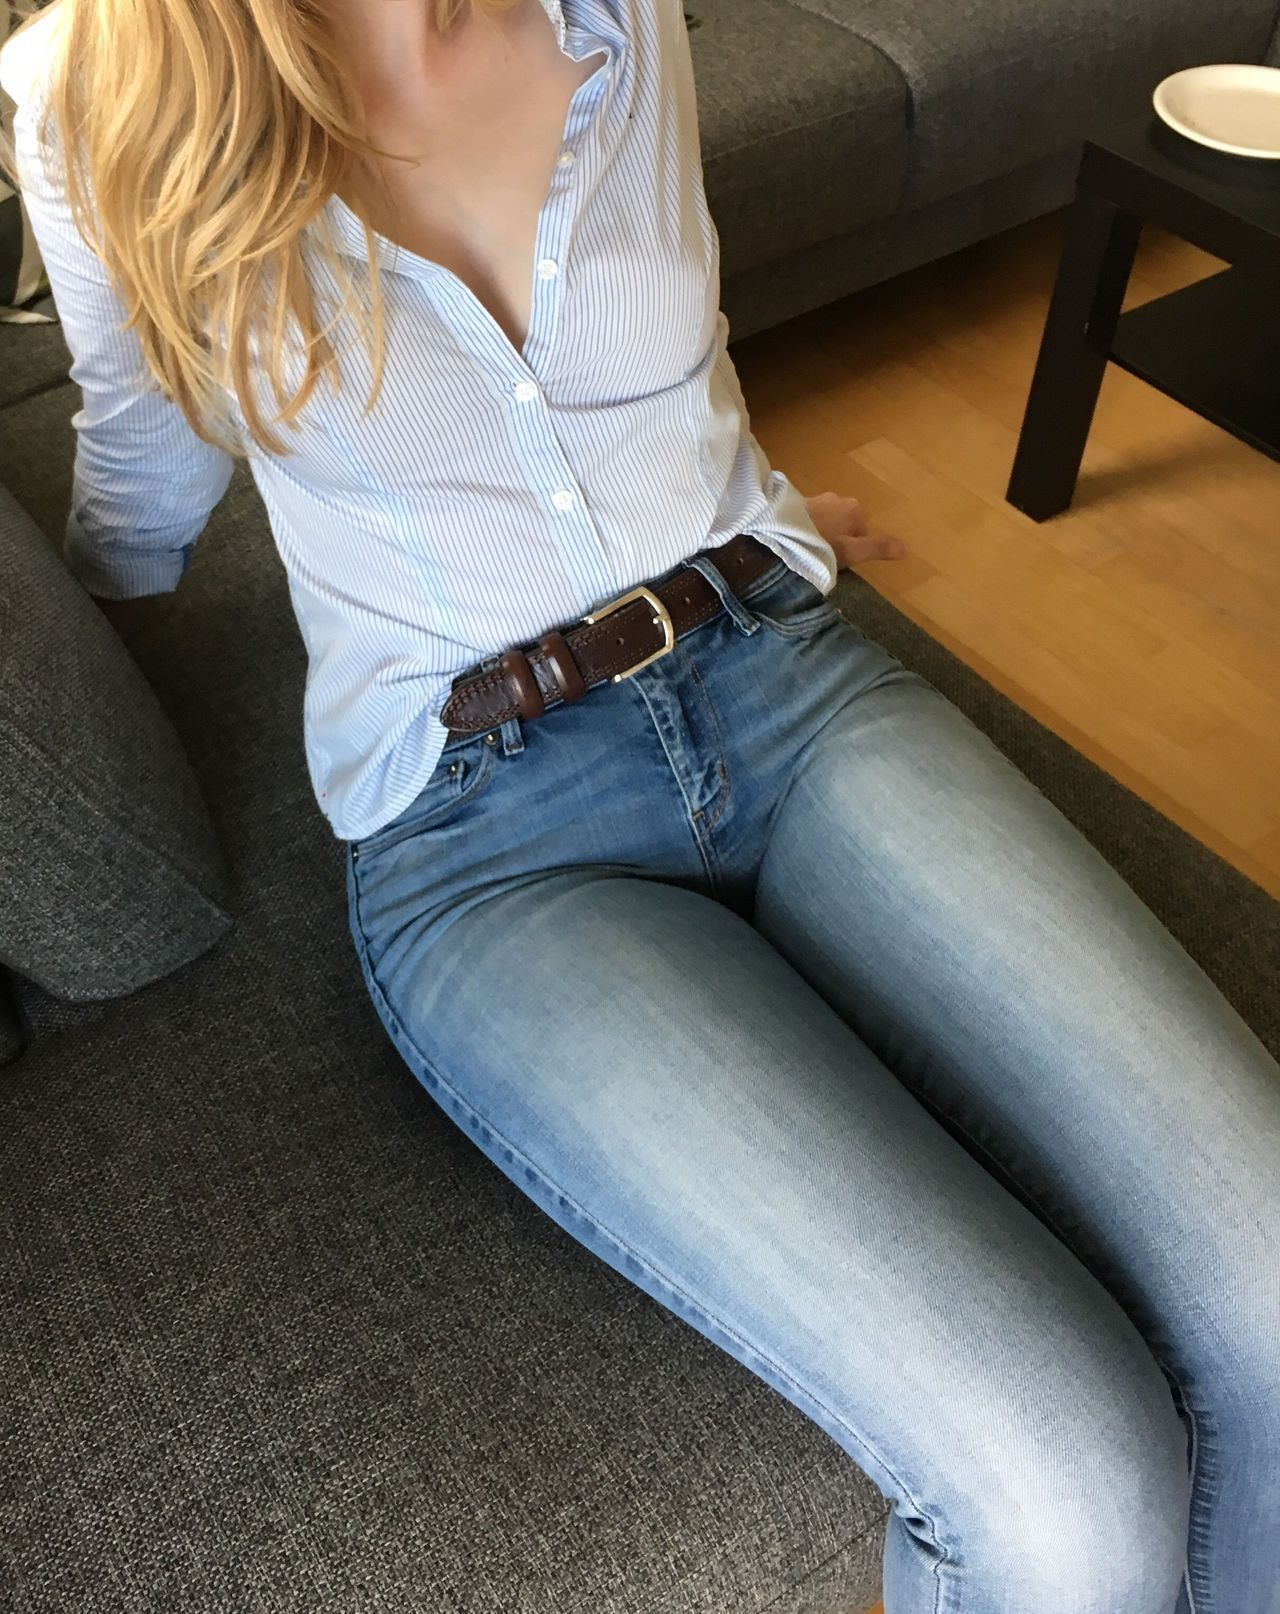 Women In Jeans Pics  Tumblr Tight Jeans Babes In 2019 -1189